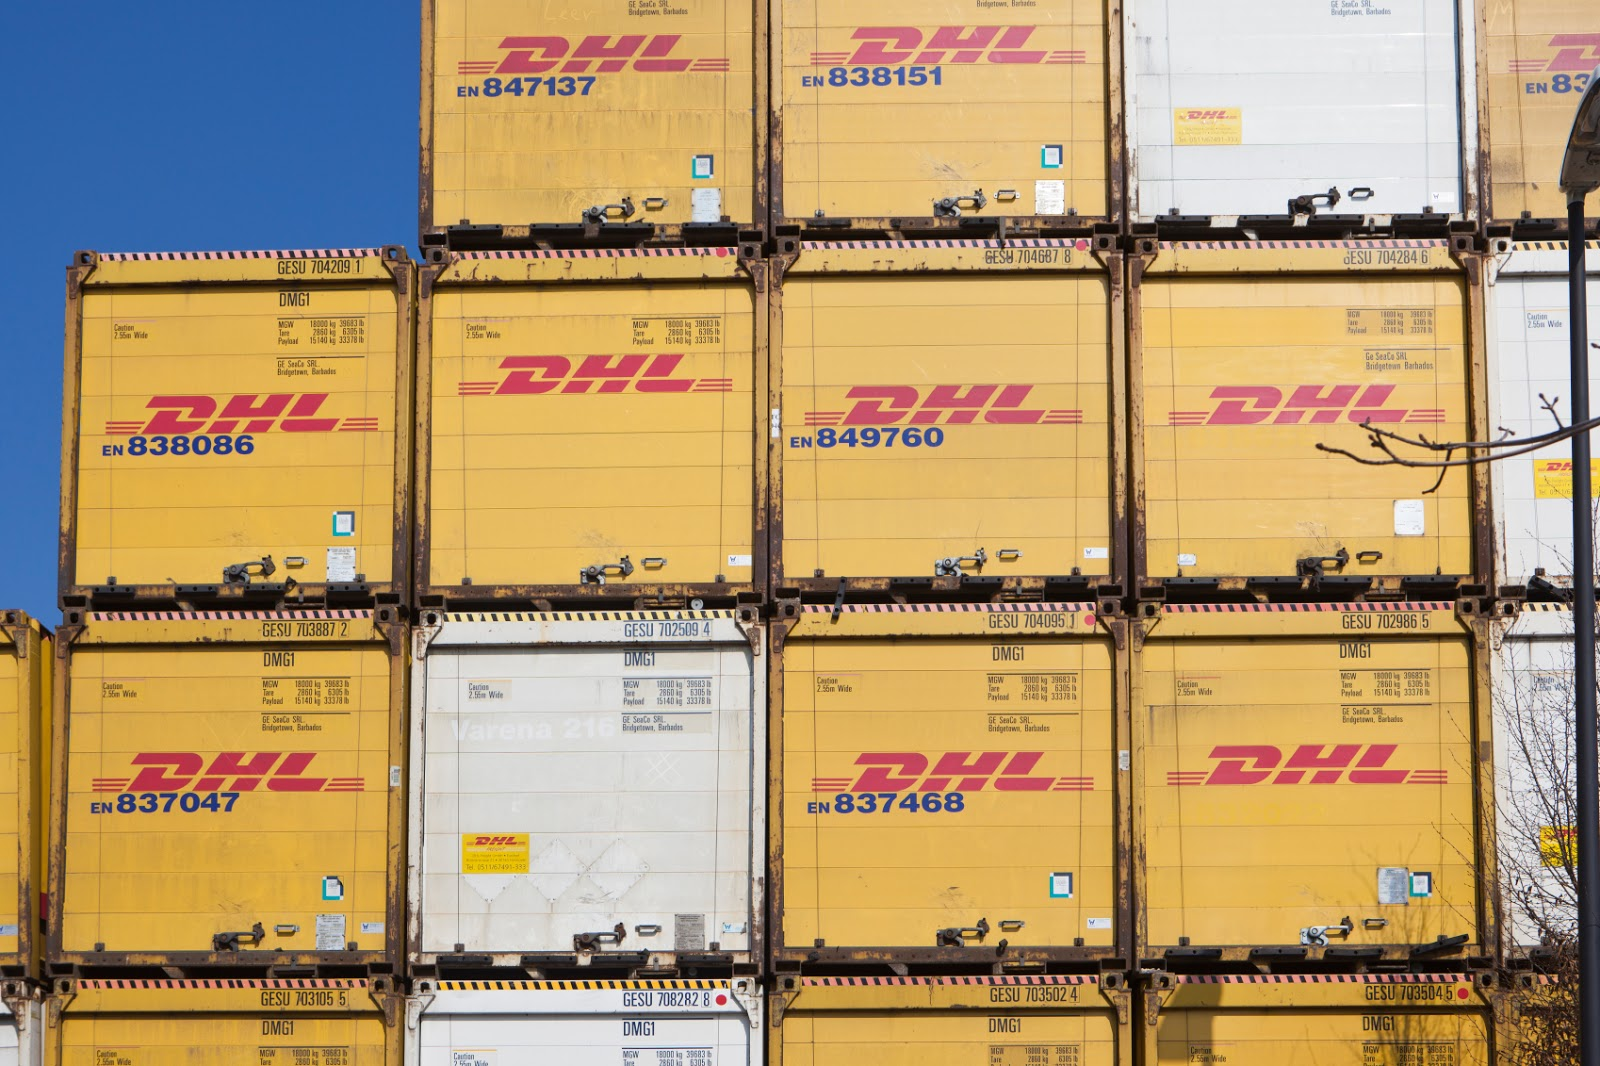 the global small business blog today in global small business dhl spurs entrepreneurial exports. Black Bedroom Furniture Sets. Home Design Ideas